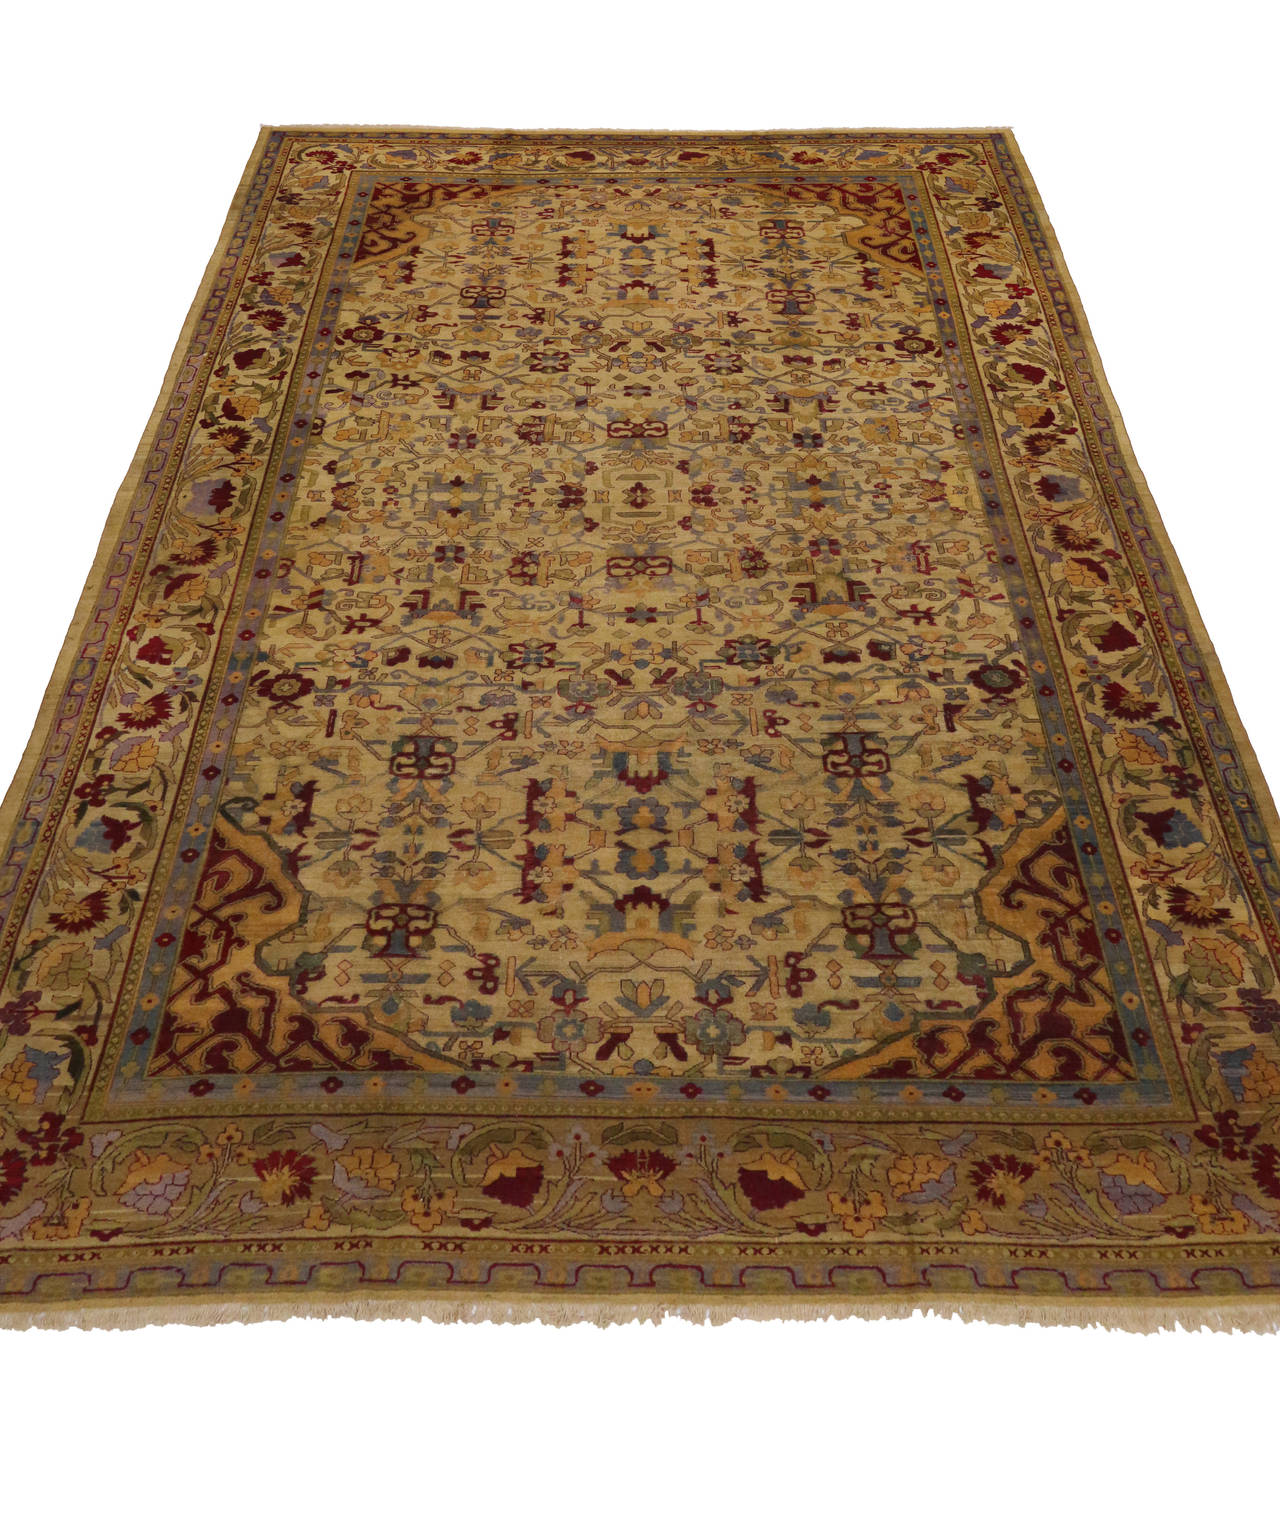 Antique Indian Agra Gallery Size Rug With Art Deco Style